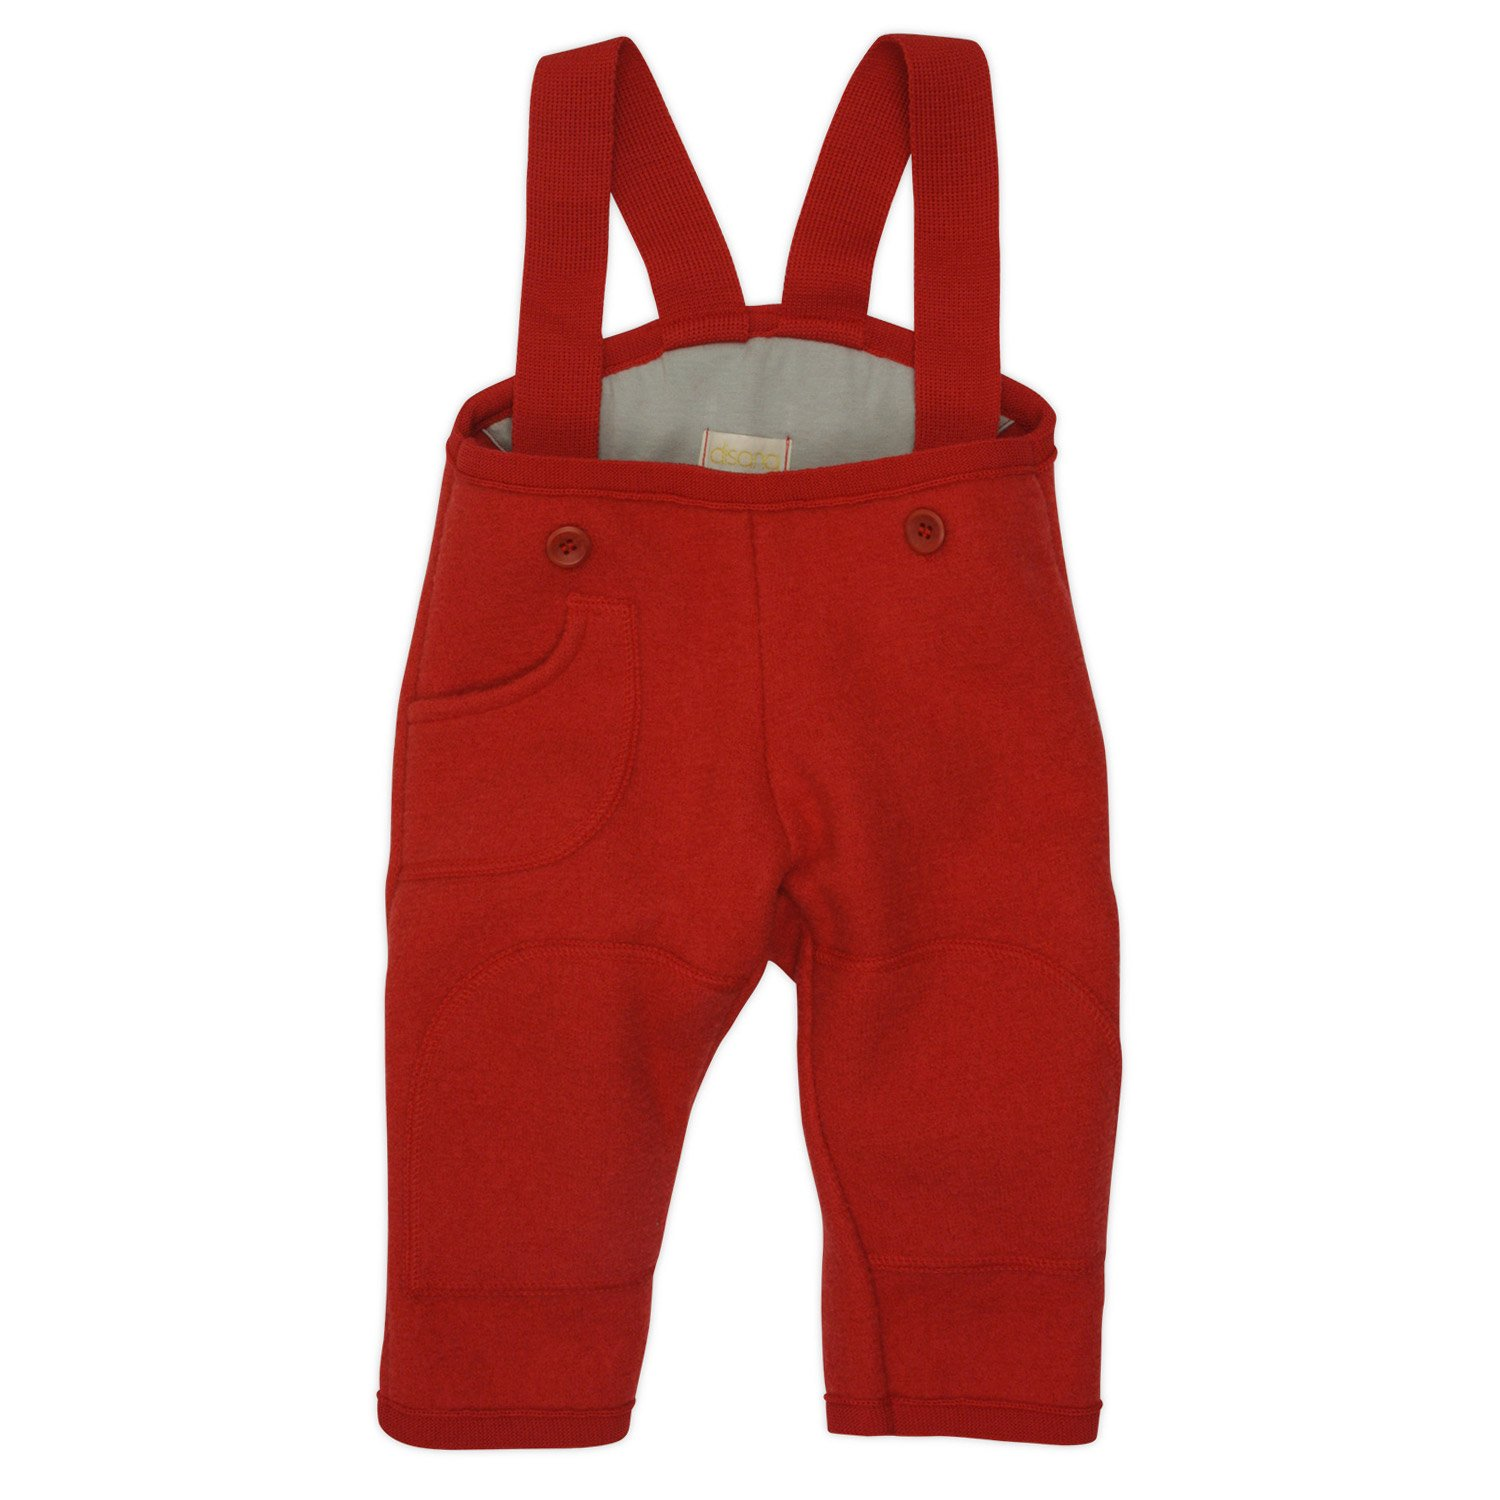 Baby Dungarees / Trousers in Organic Boiled Merino Wool Red 74/80 6-12m Disana 26544-082-00511-21